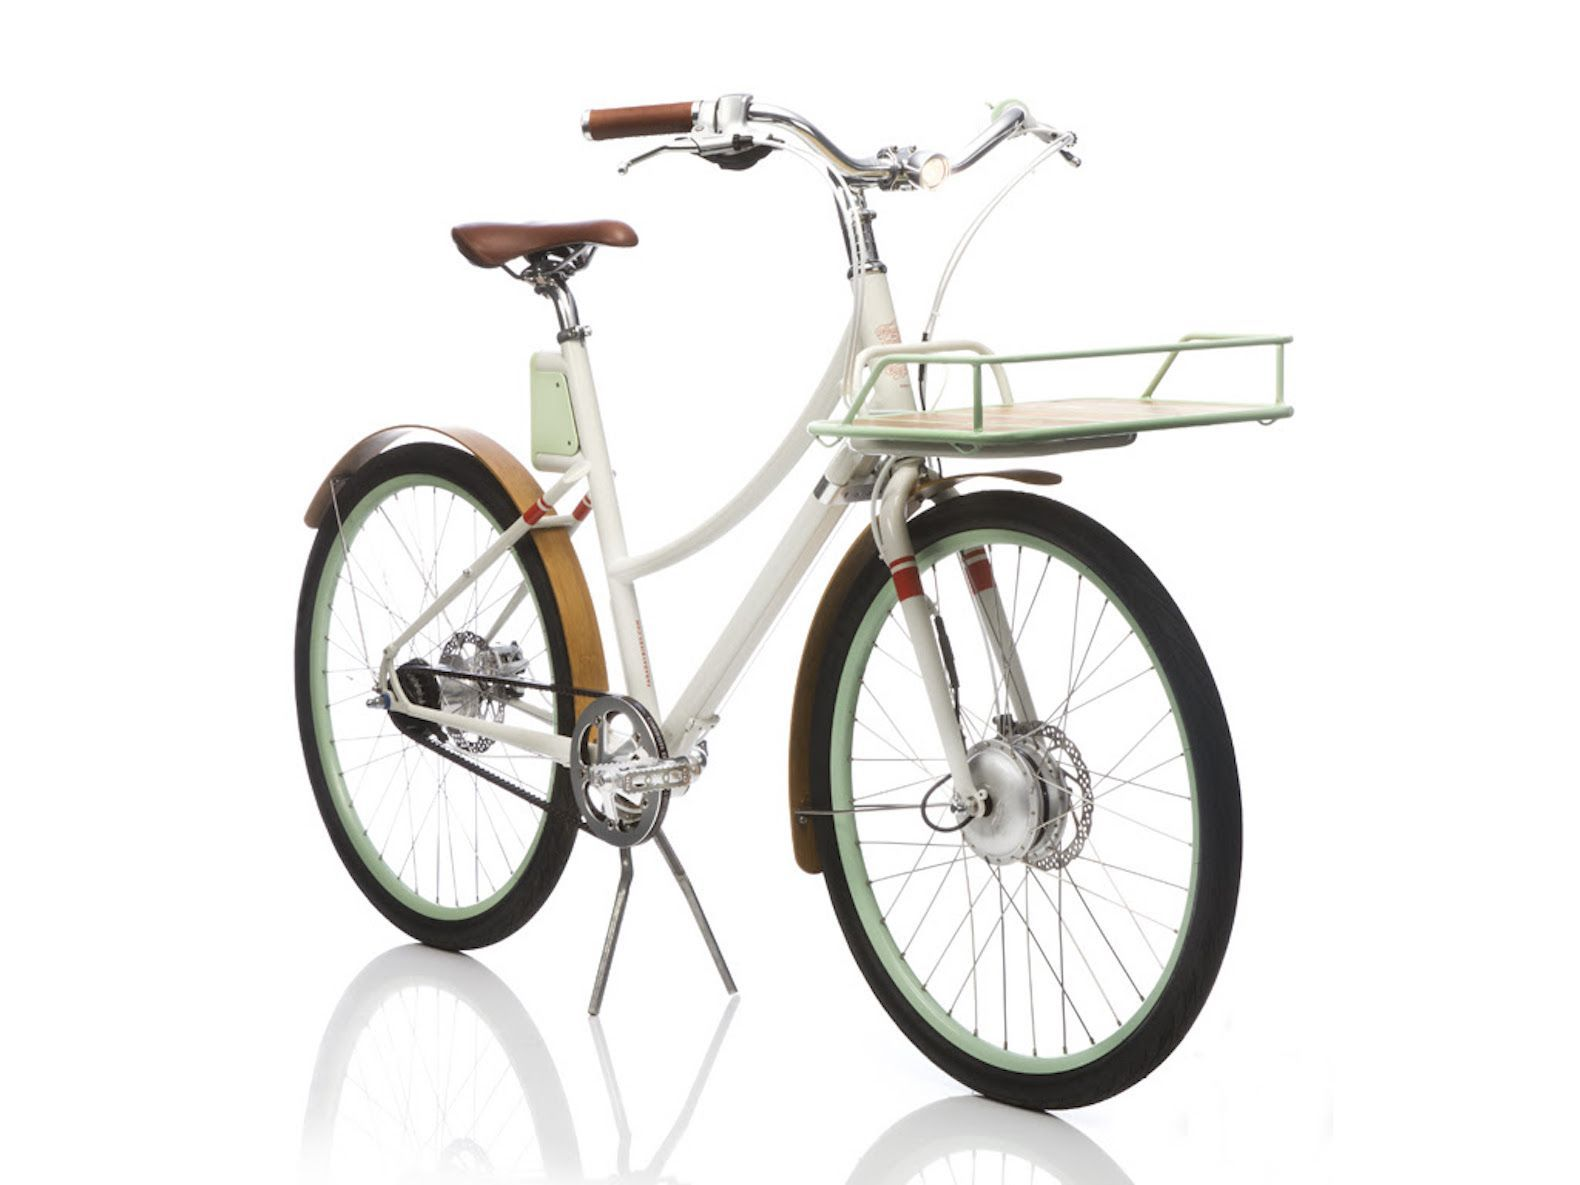 Conquer Hills In Style With The Elegant Faraday Cortland Electric